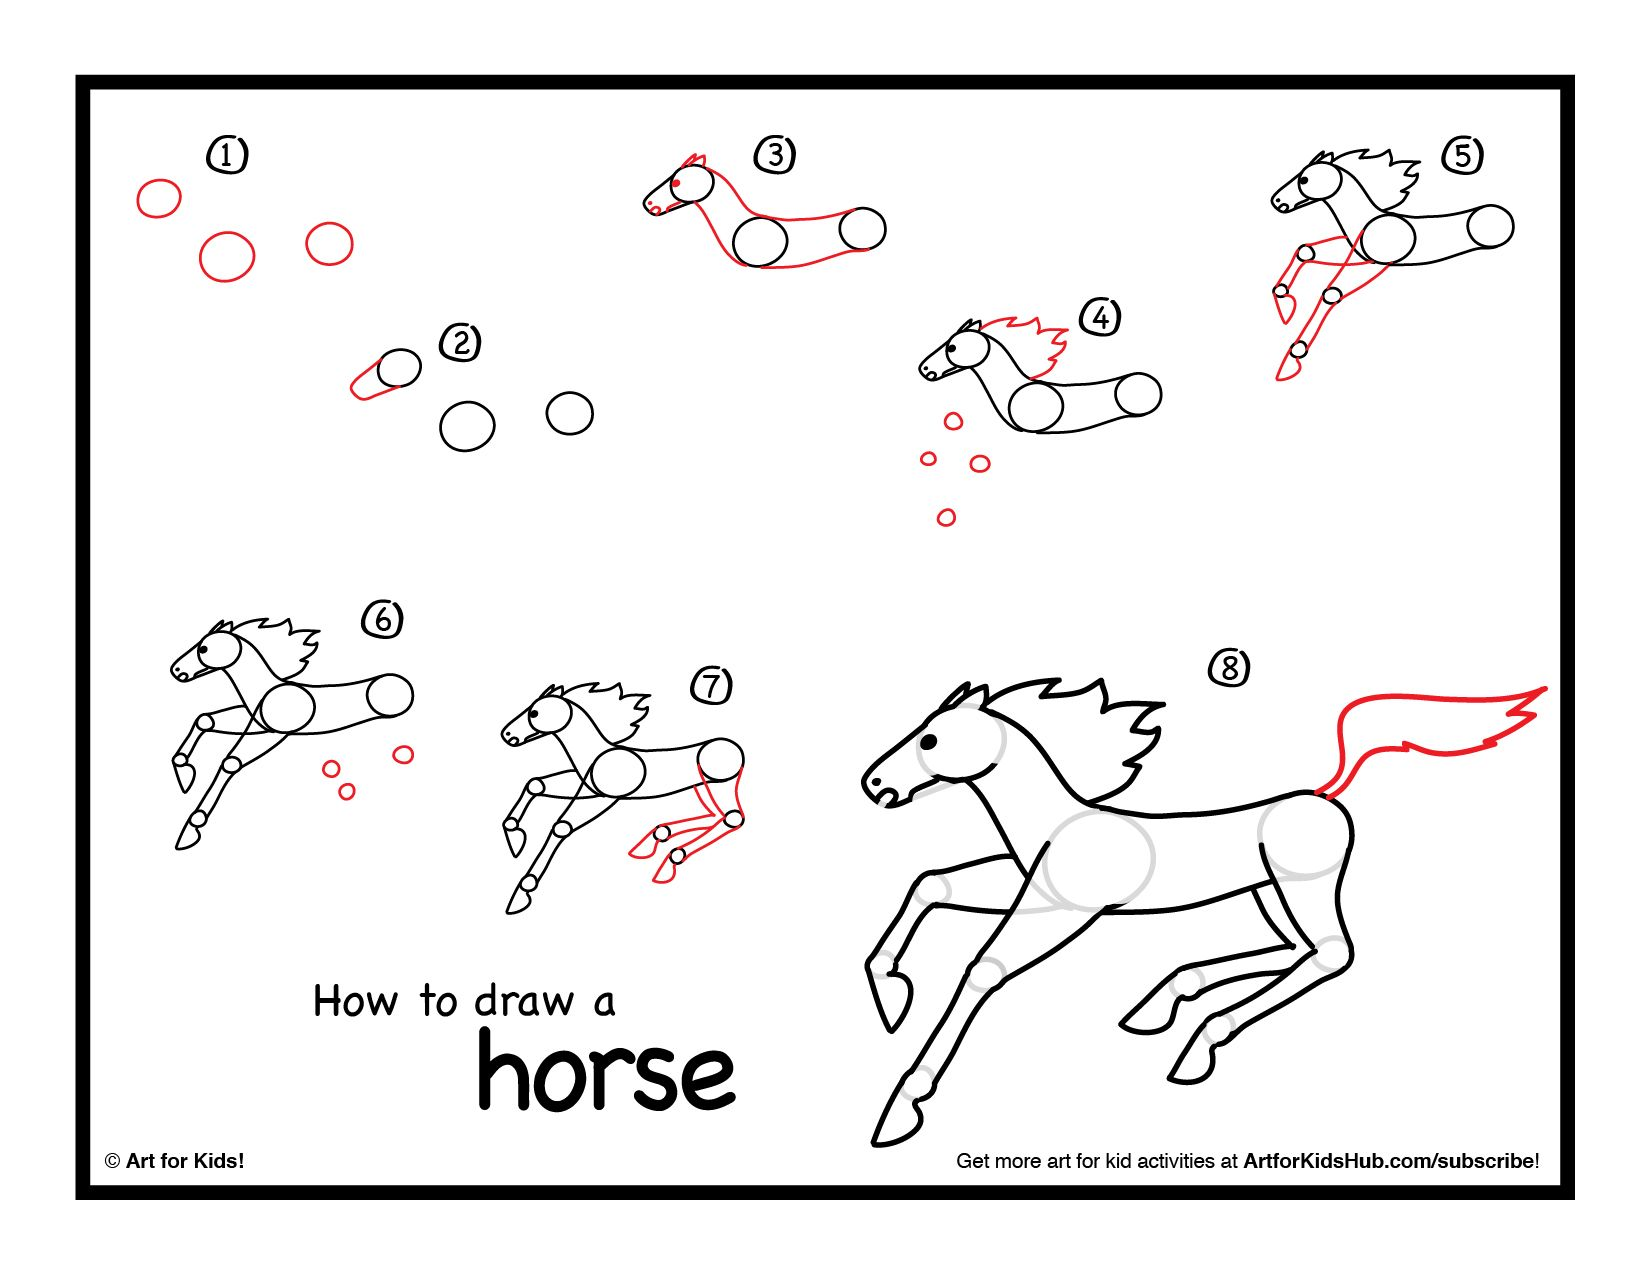 How To Draw A Horse  Art For Kids Hub